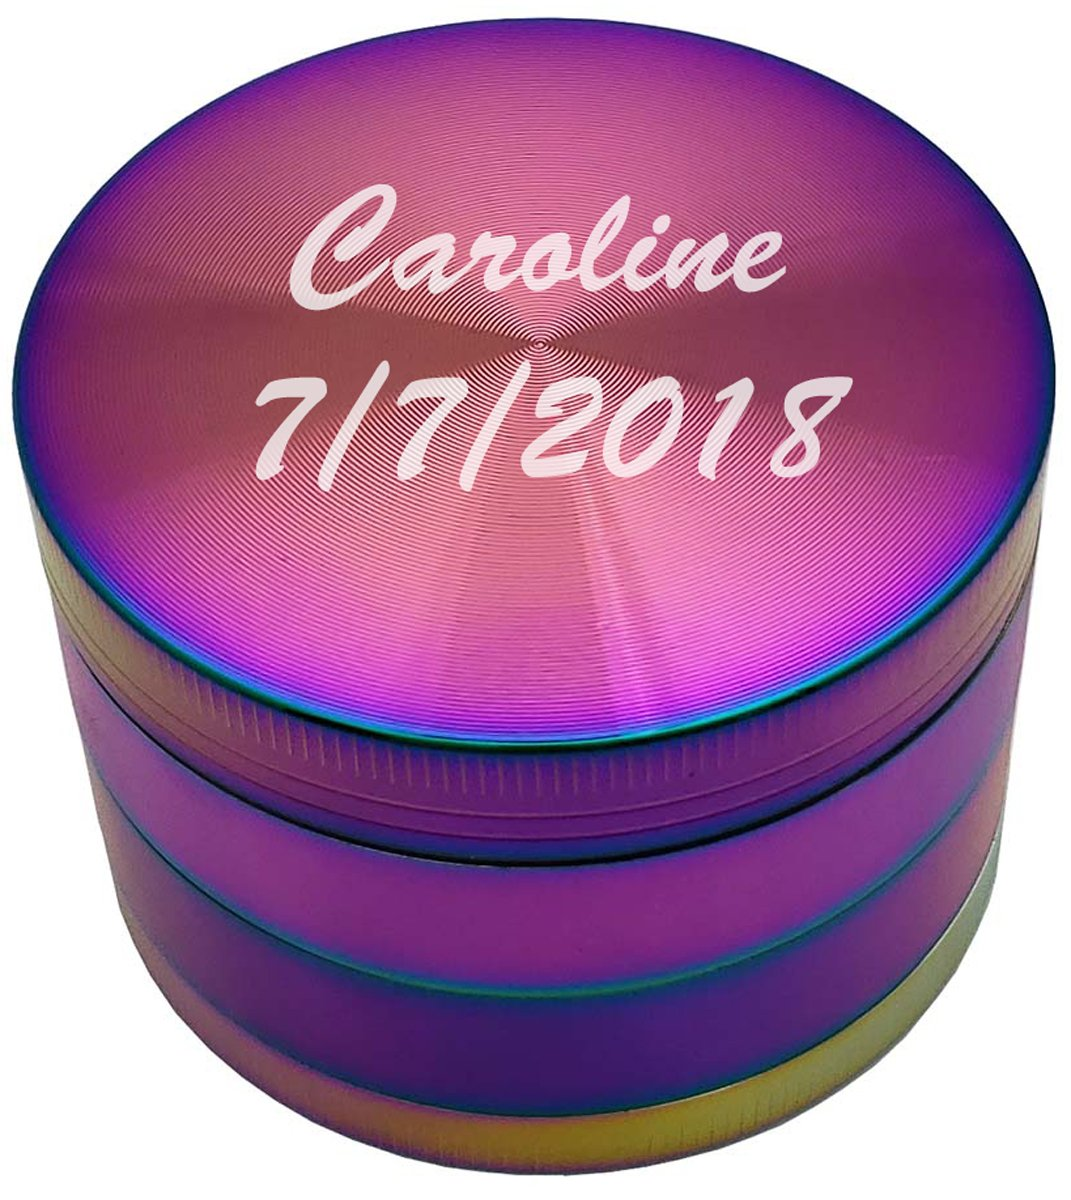 Gifts Infinity Personalized Herb, Spice or Tobacco Durable 62mm 2.5 Inches Grinder free engraving (Rainbow) by GIFTS INFINITY (Image #2)